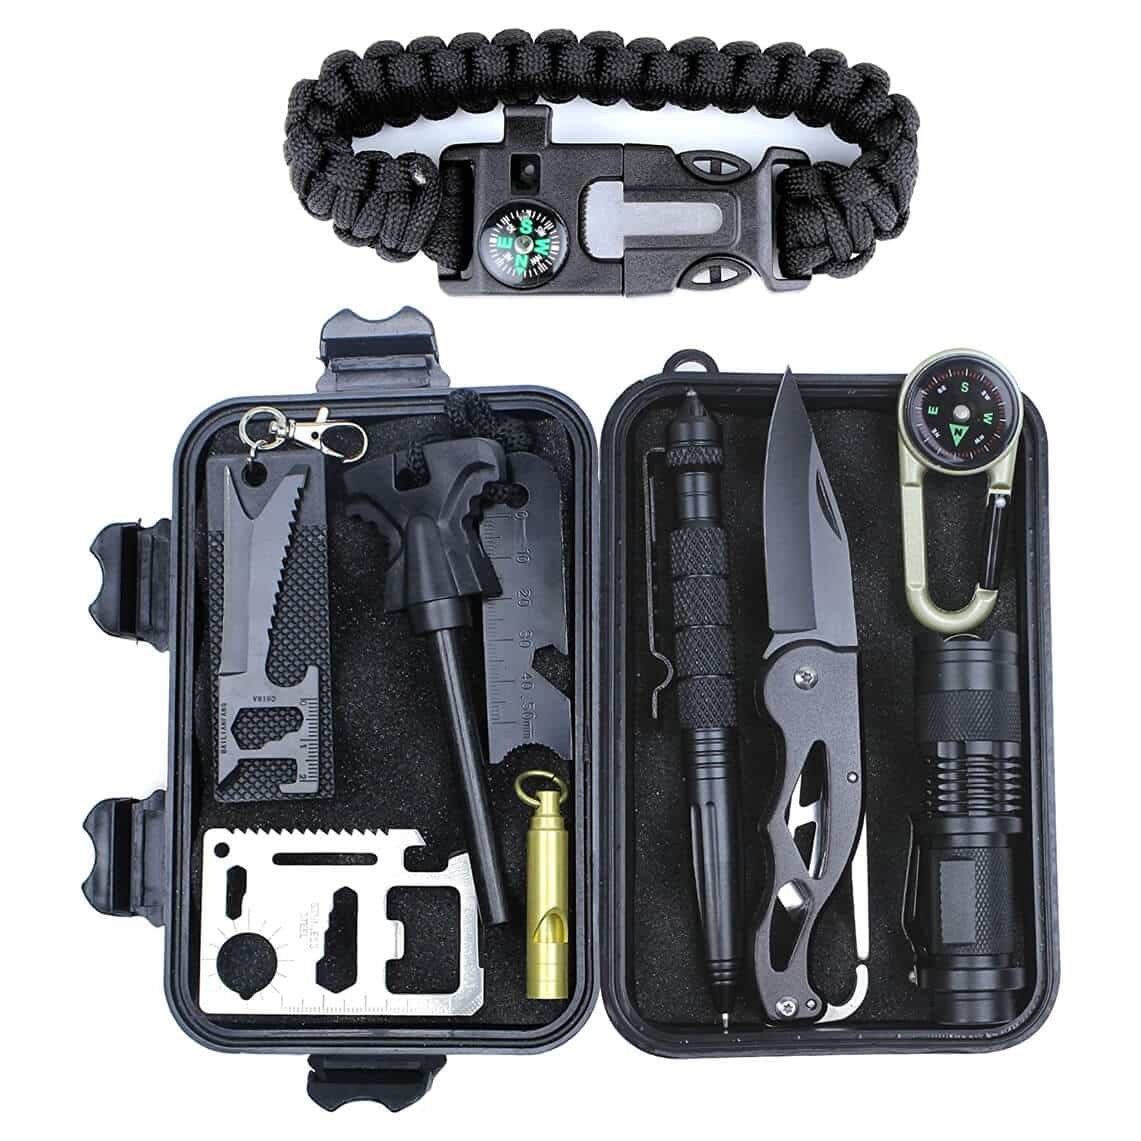 HSYTEK Survival Gear Kit 11 in 1